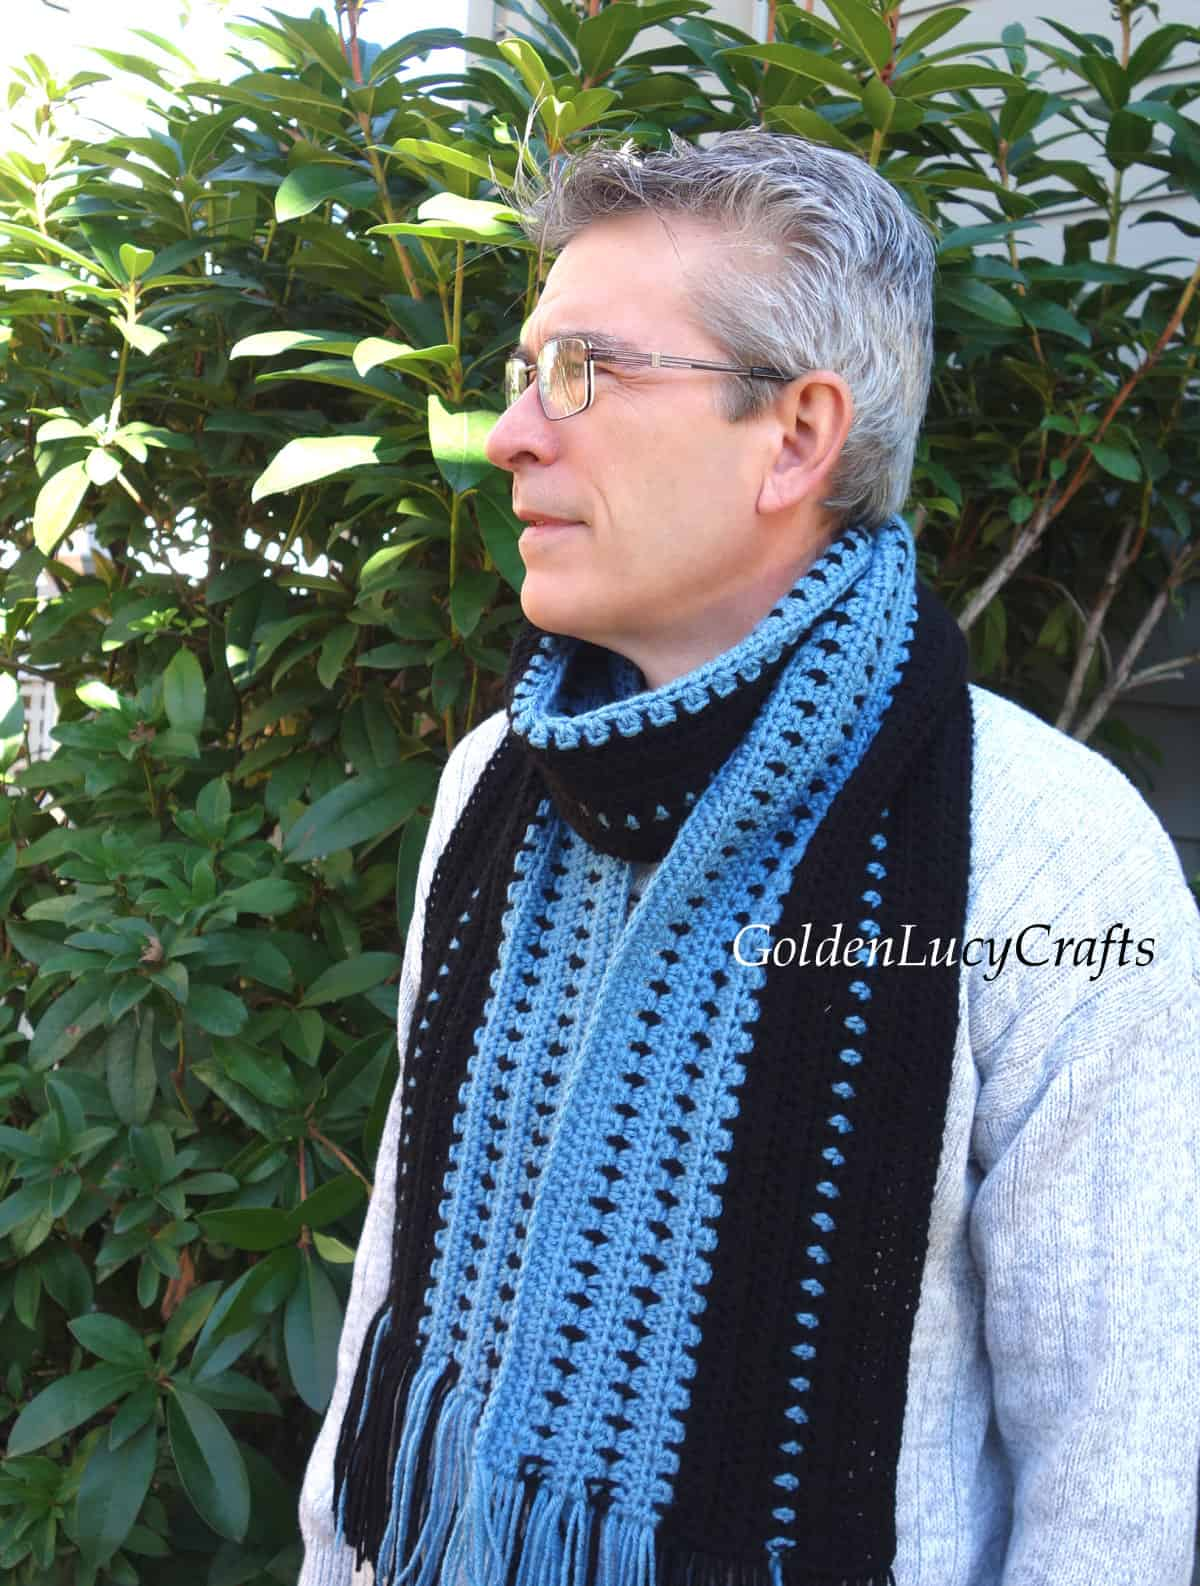 Men dressed in crocheted scarf in blue and black colors.